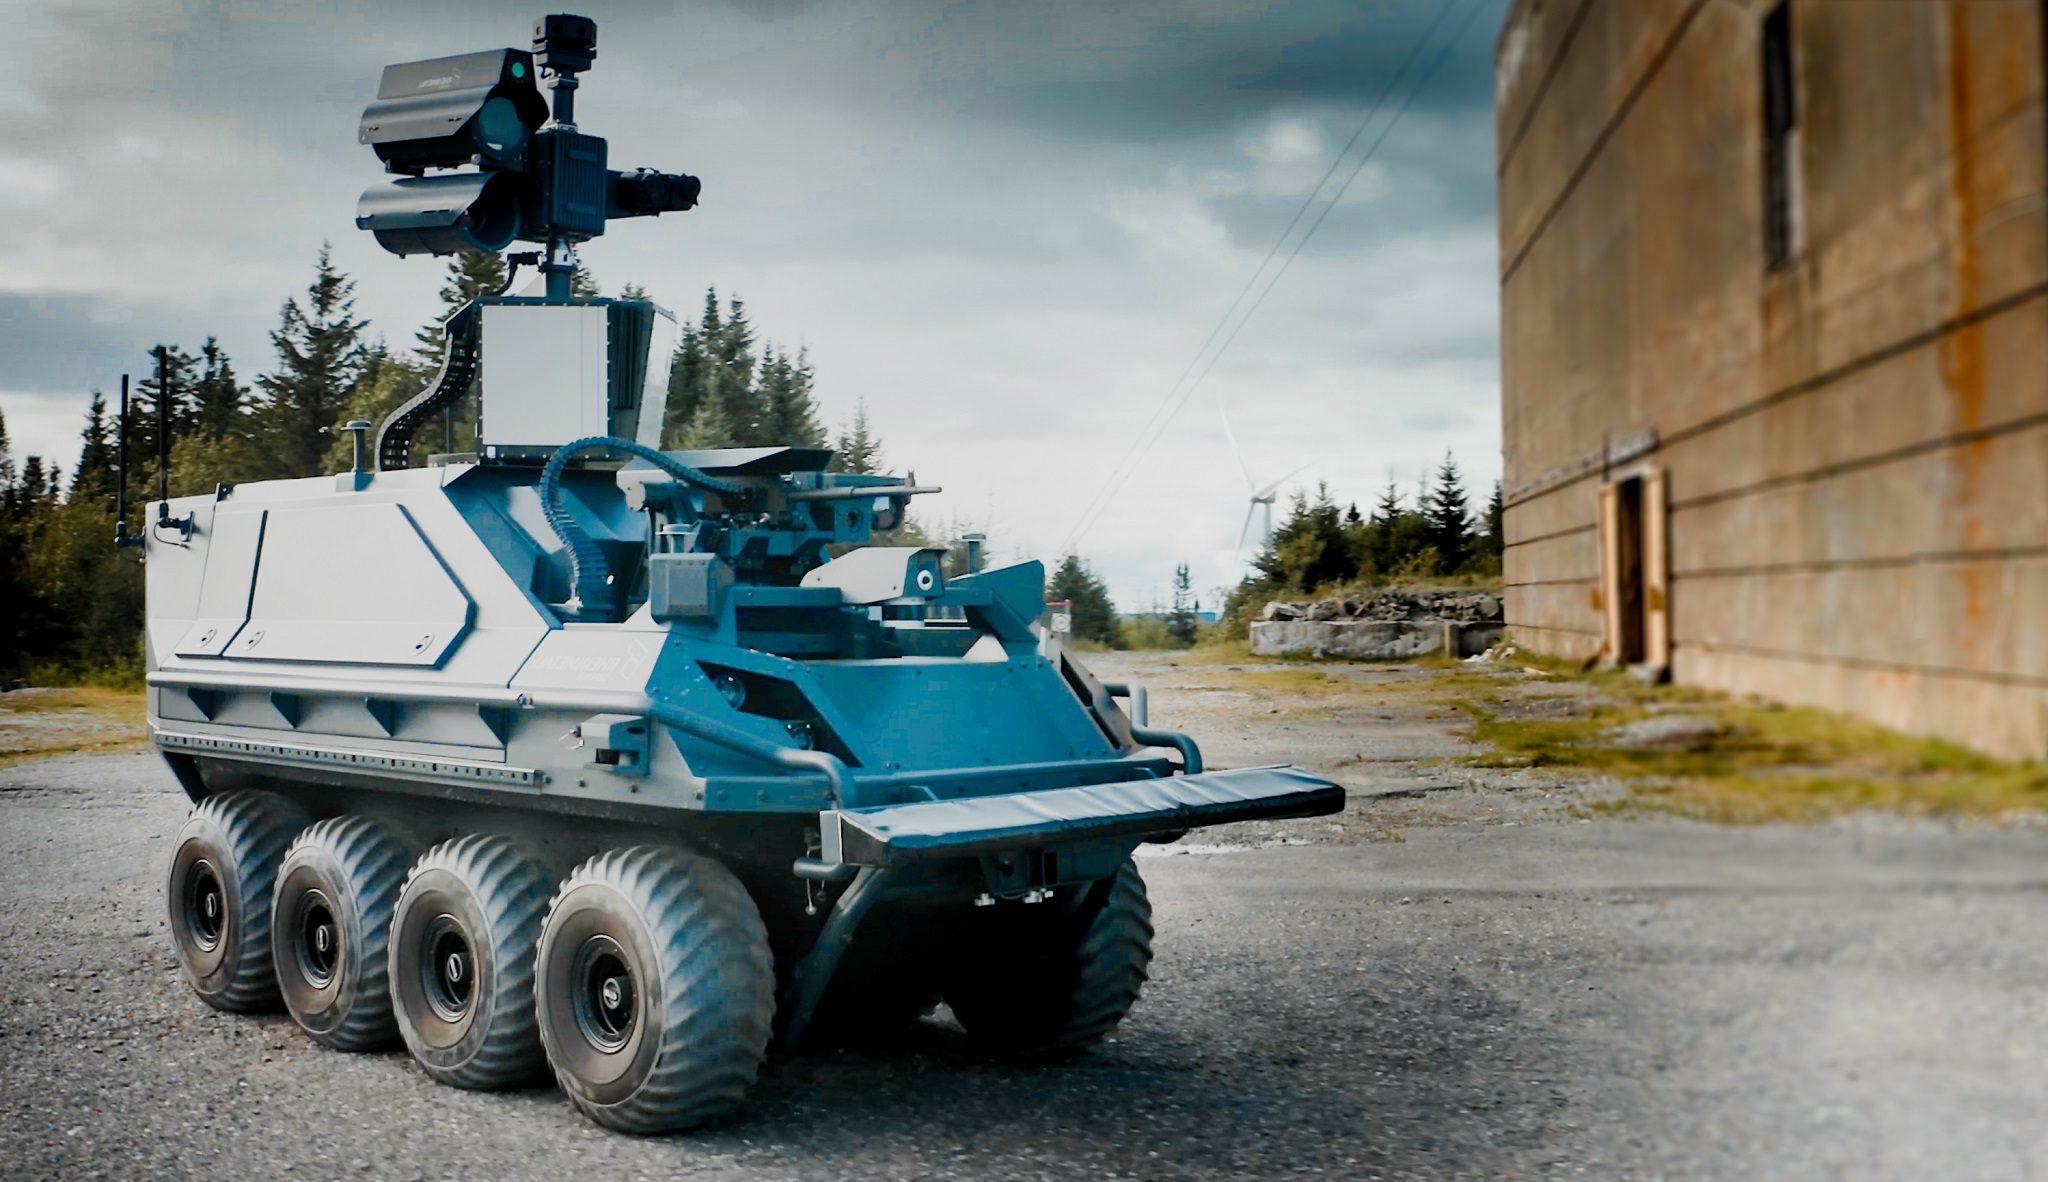 German weapons maker unveils its new unmanned ground vehicle